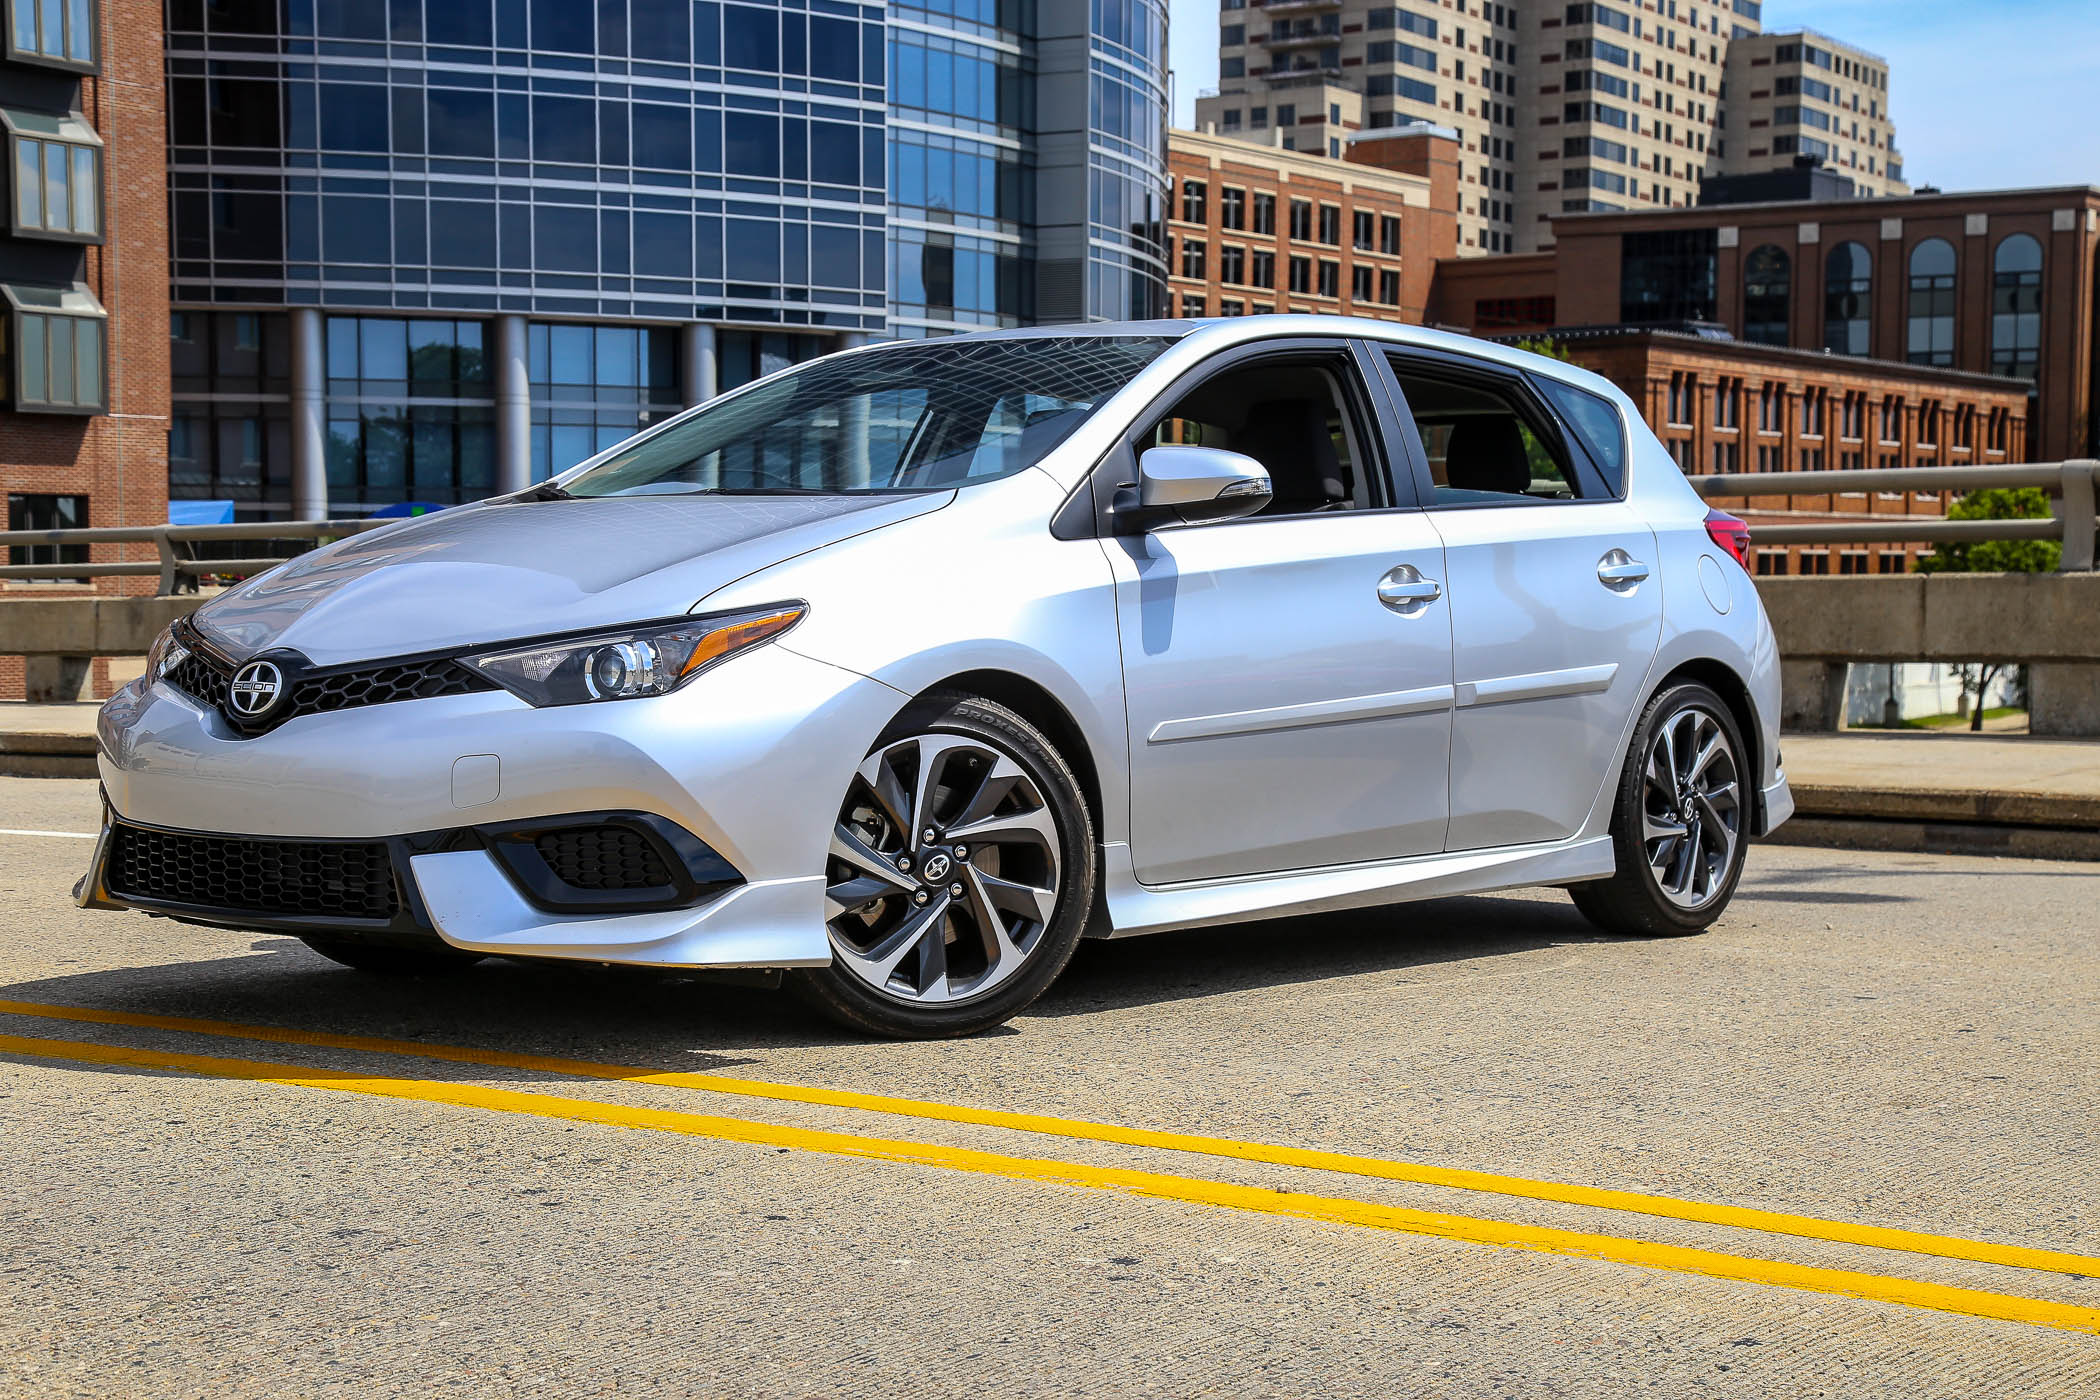 2016 Scion iM equipped with TRD package